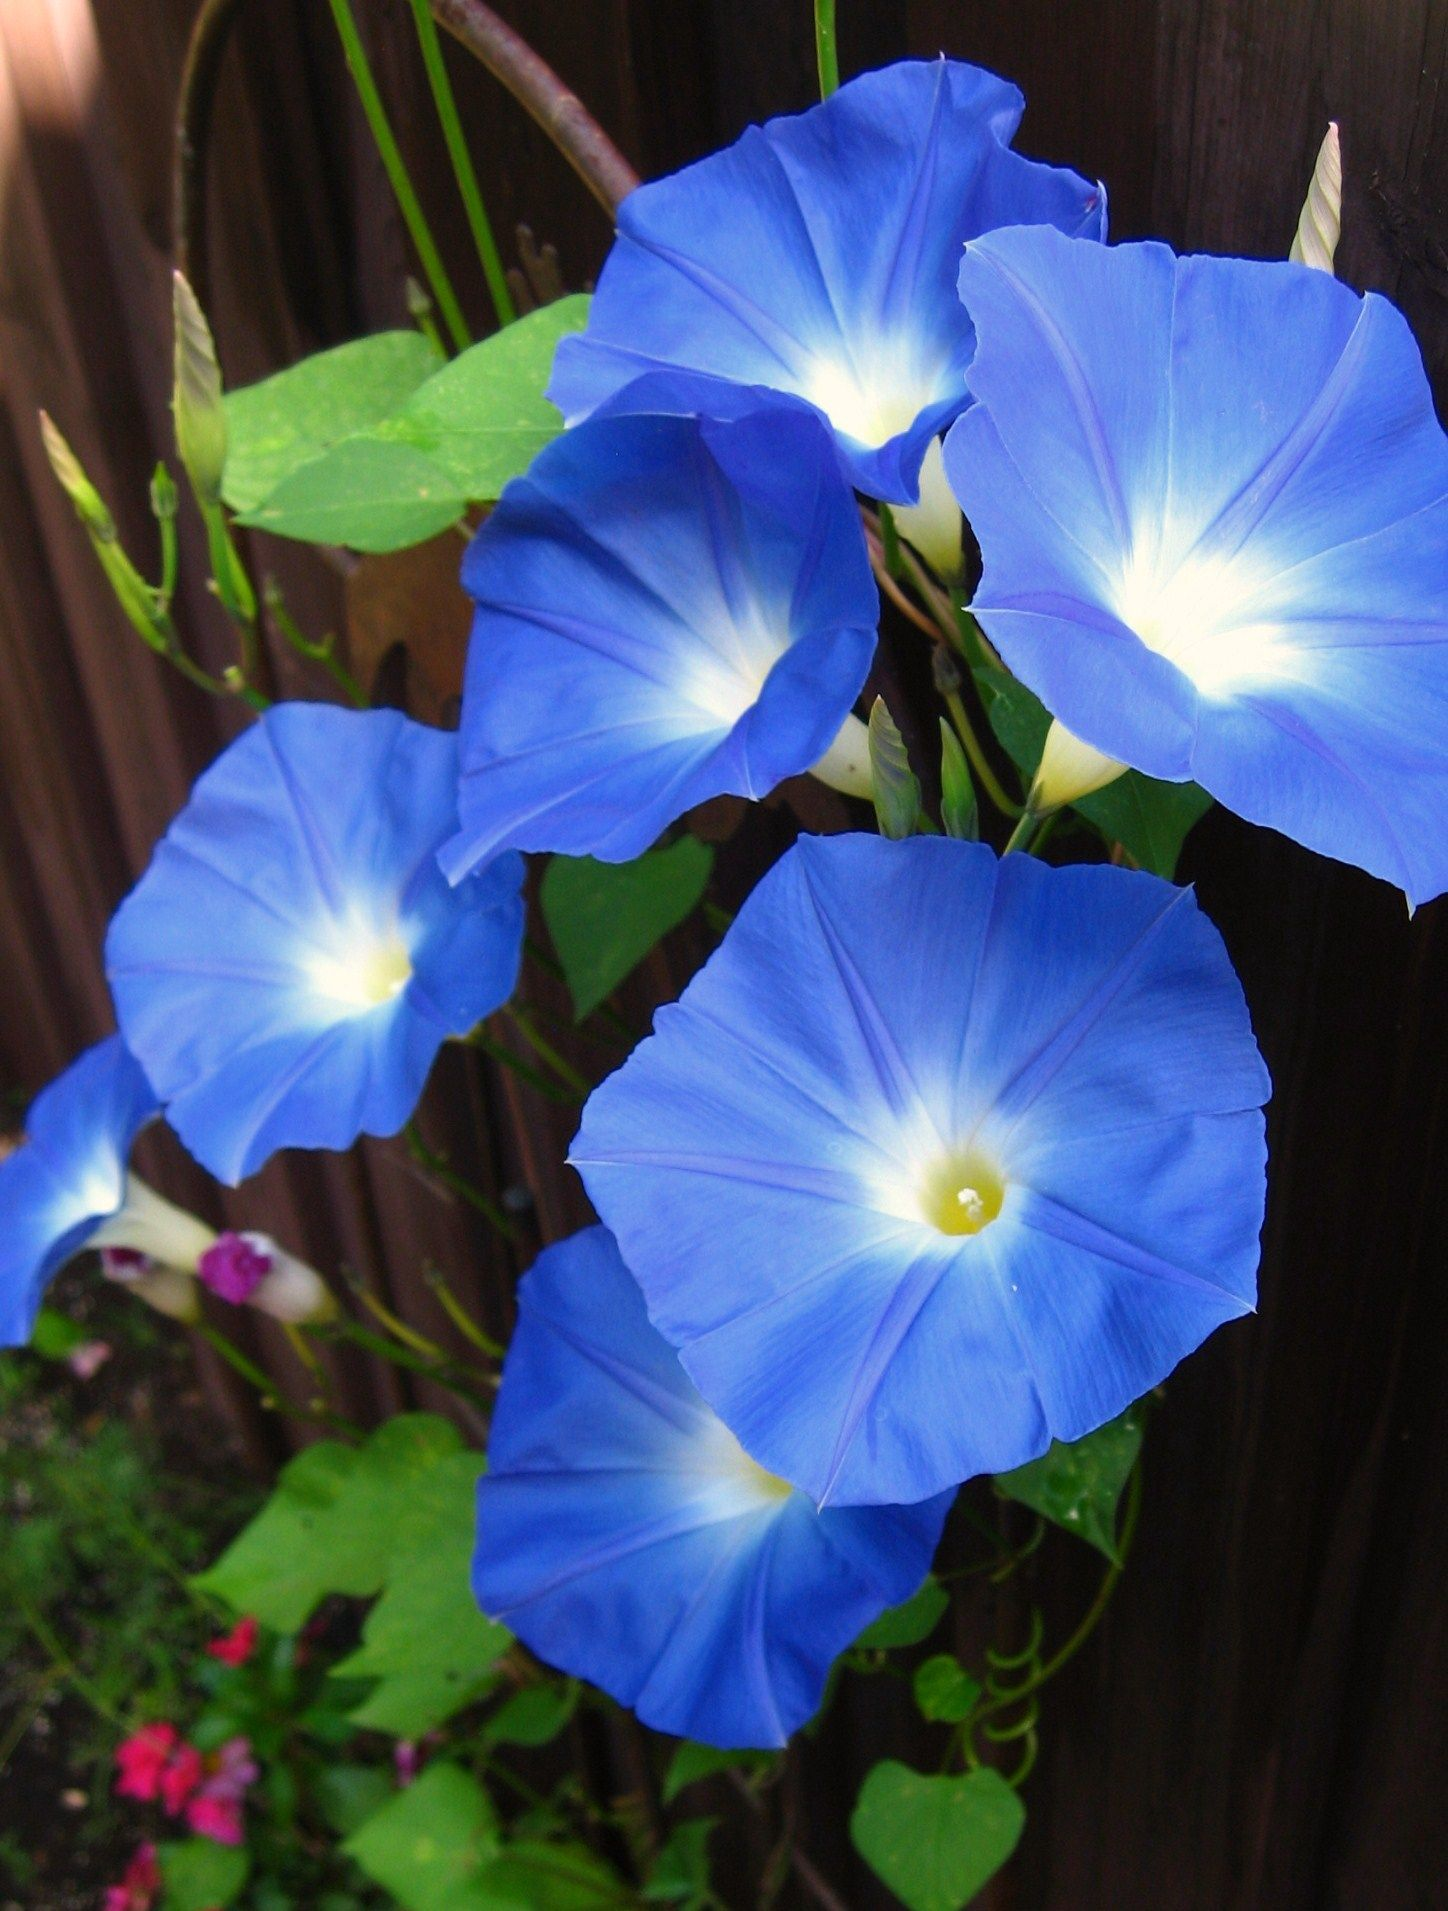 Heavenly Blue Morning Glory Morning Glory Flowers Blue Morning Glory Beautiful Flowers